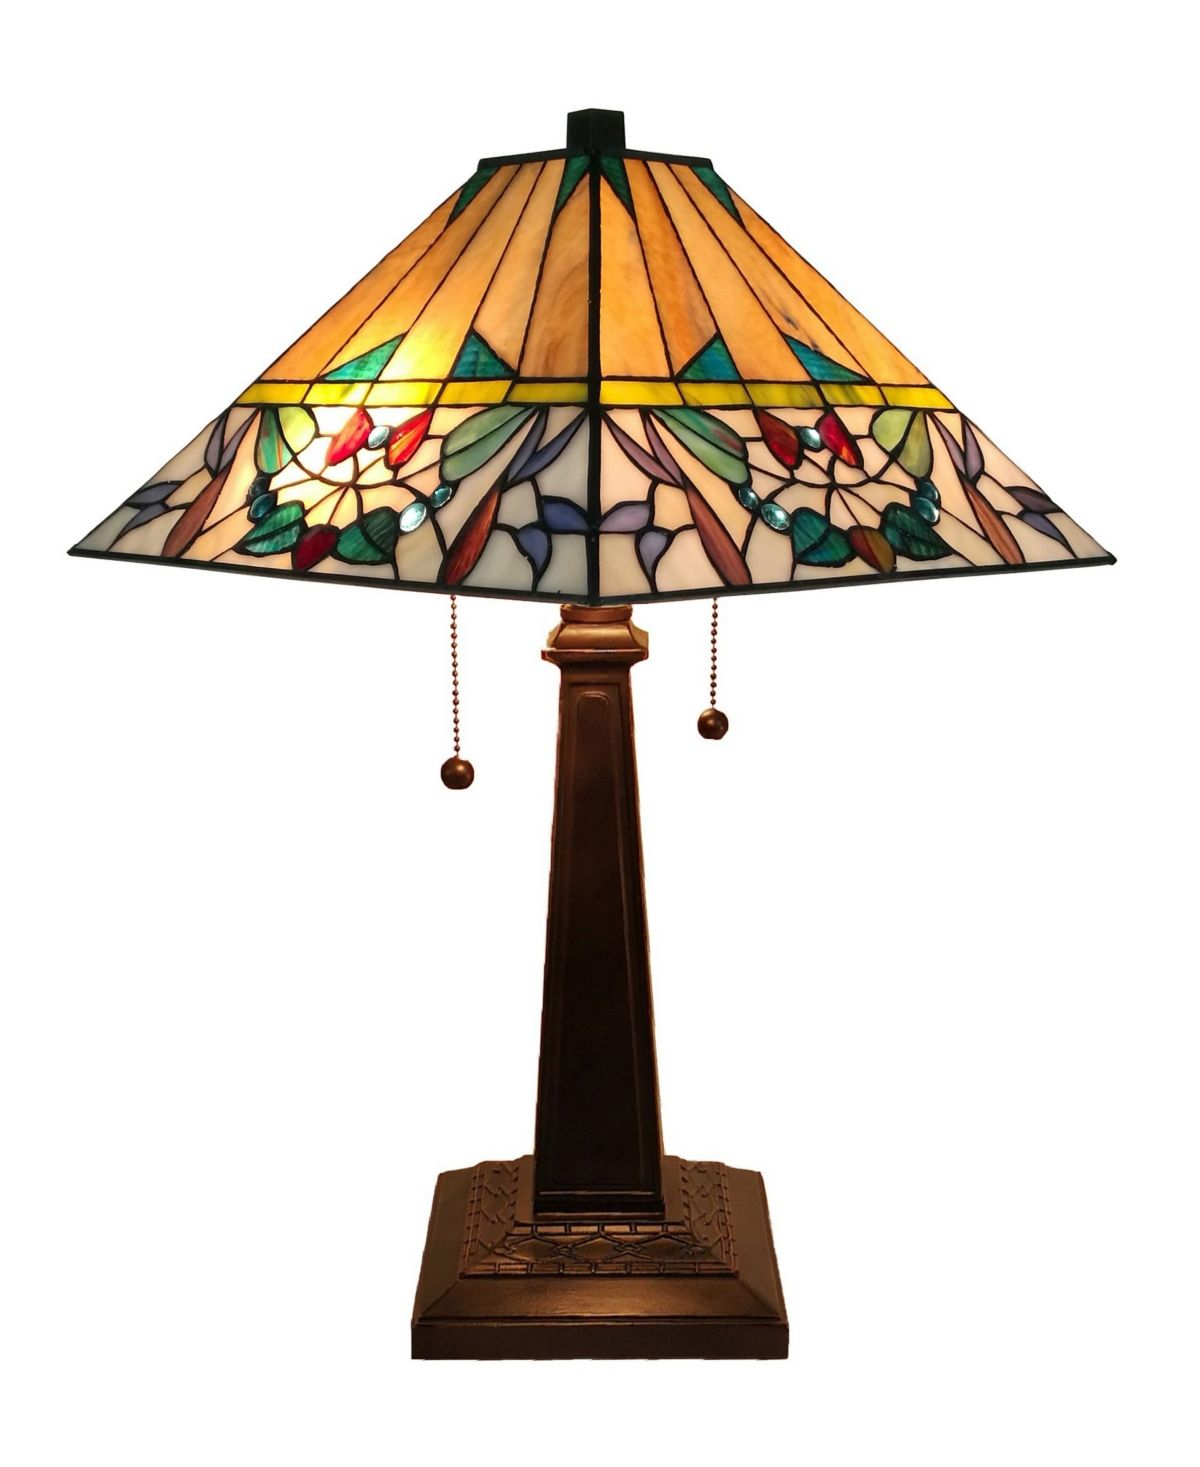 Amora Lighting Tiffany Style Mission Table Lamp Reviews Home Macy S In 2020 Stained Glass Table Lamps Tiffany Style Lamp Table Lamp